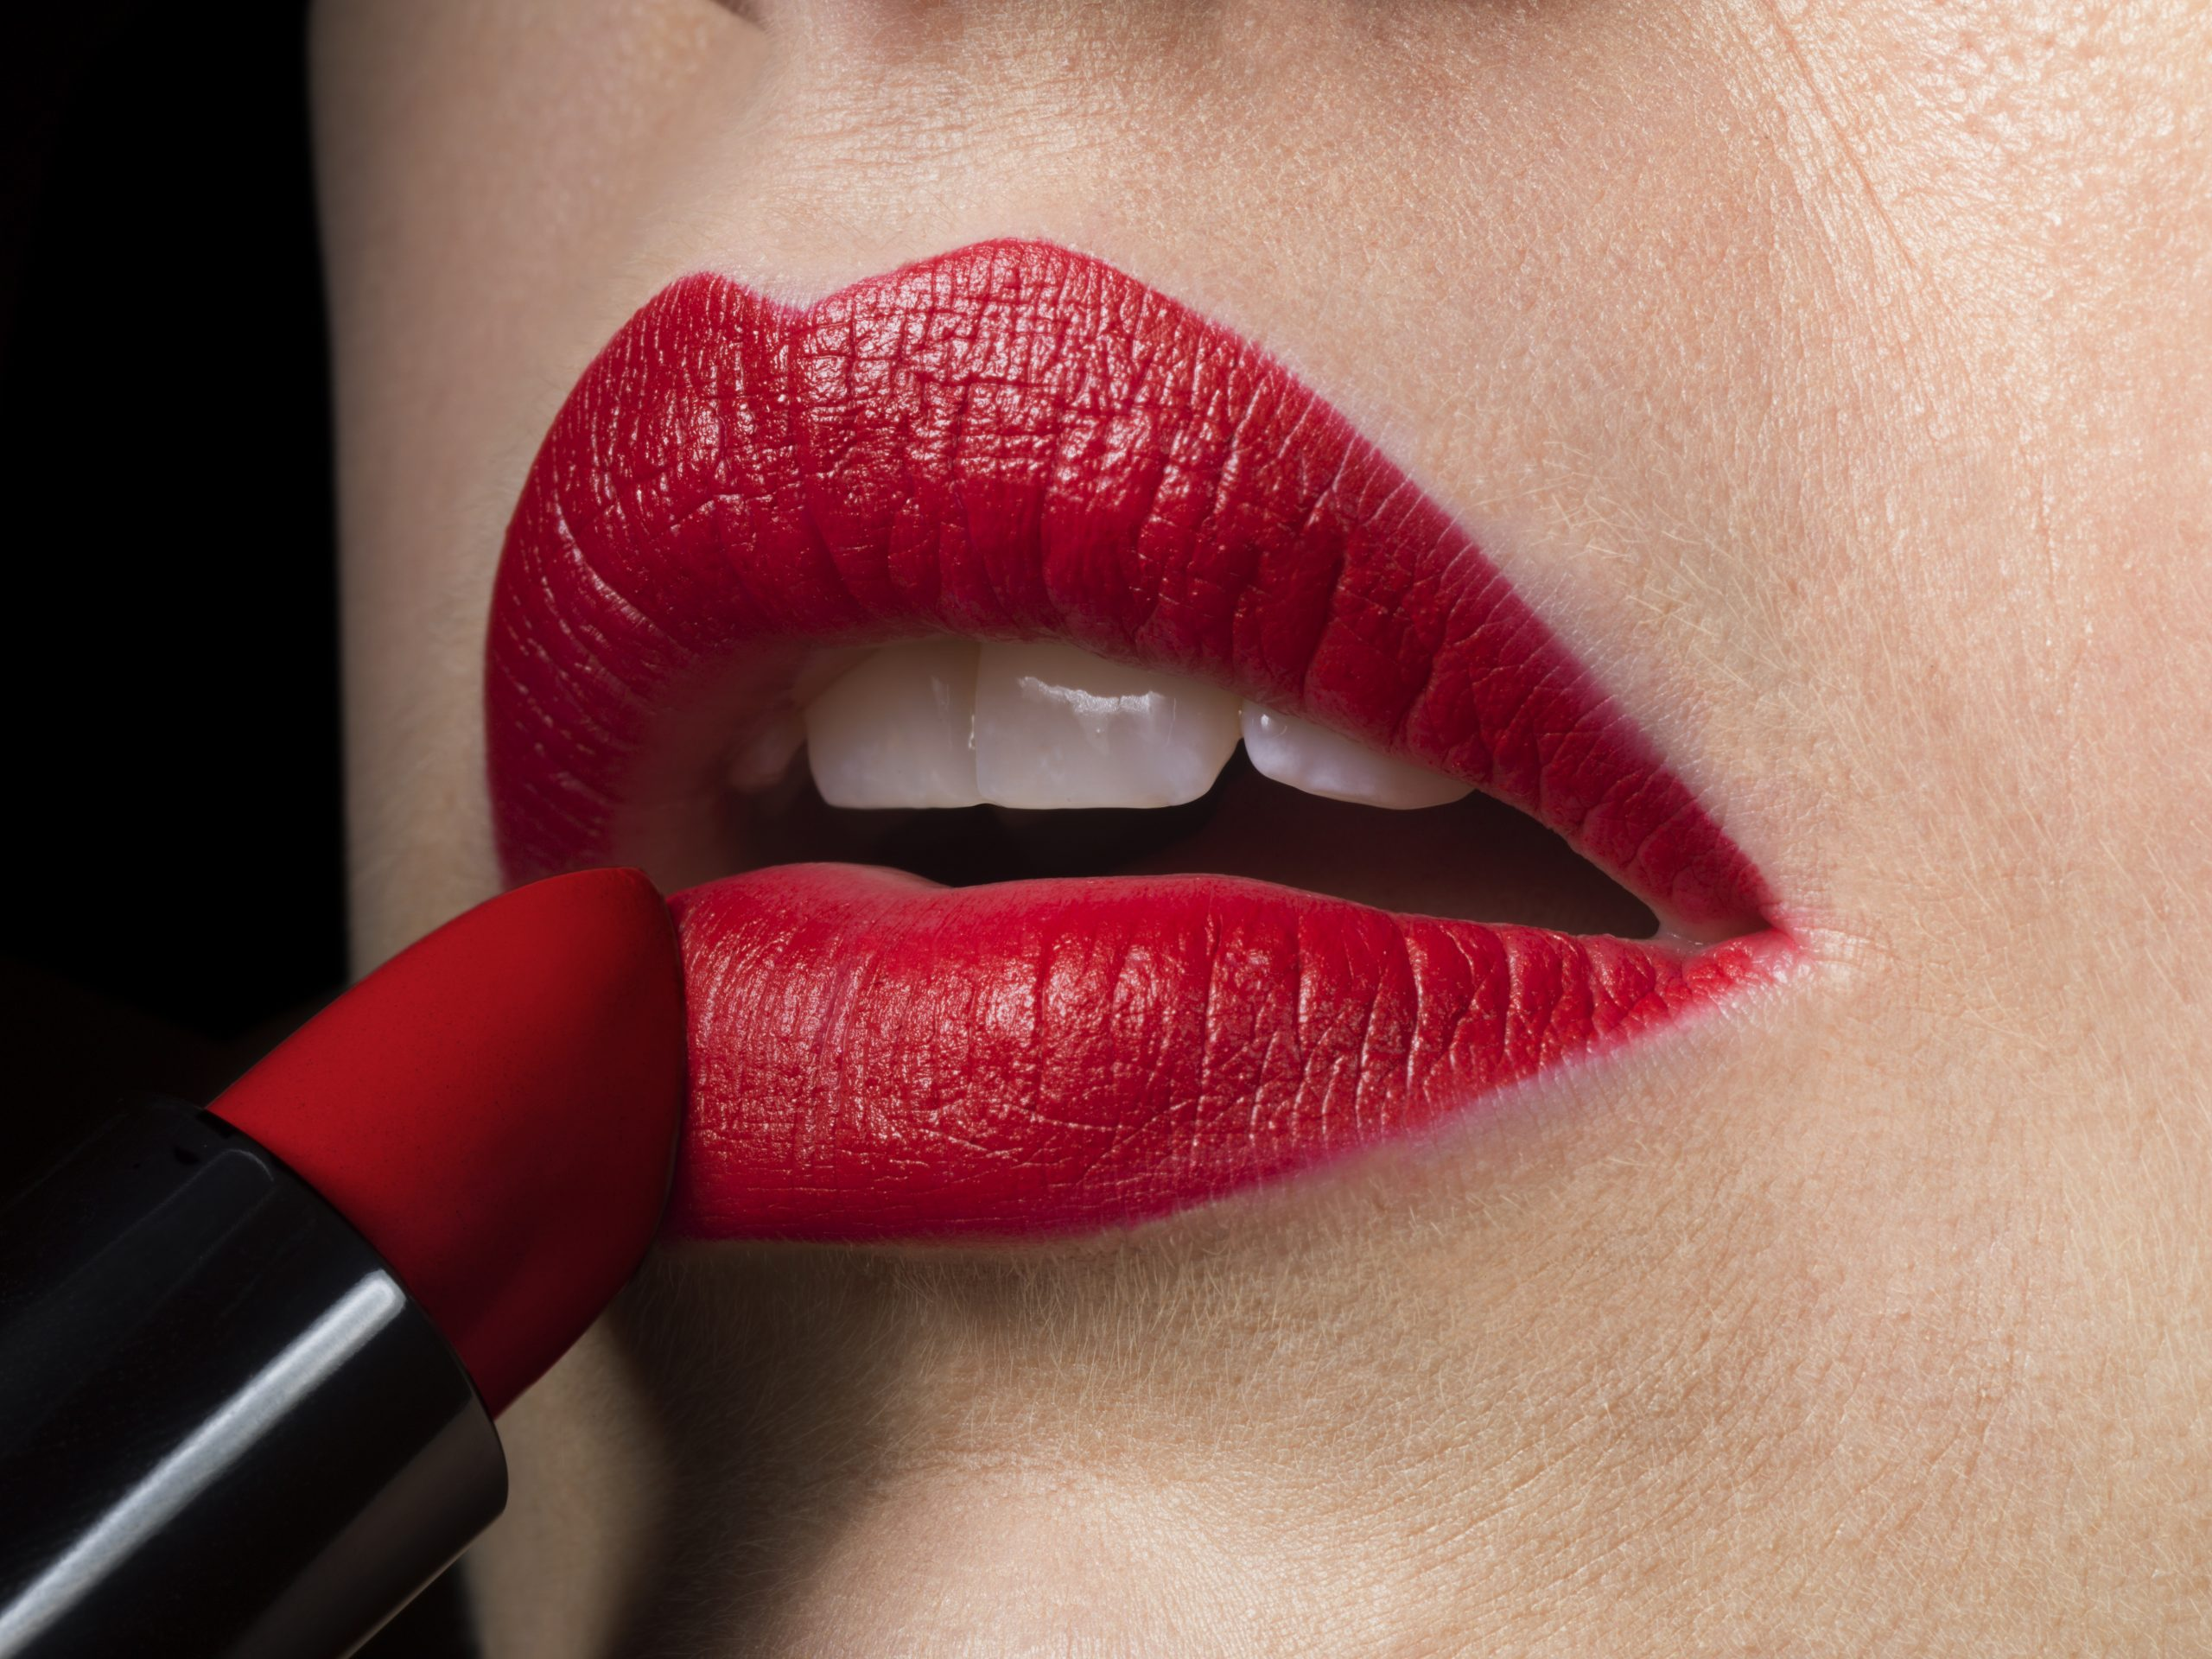 To find the perfect lipstick, check under your shirt!